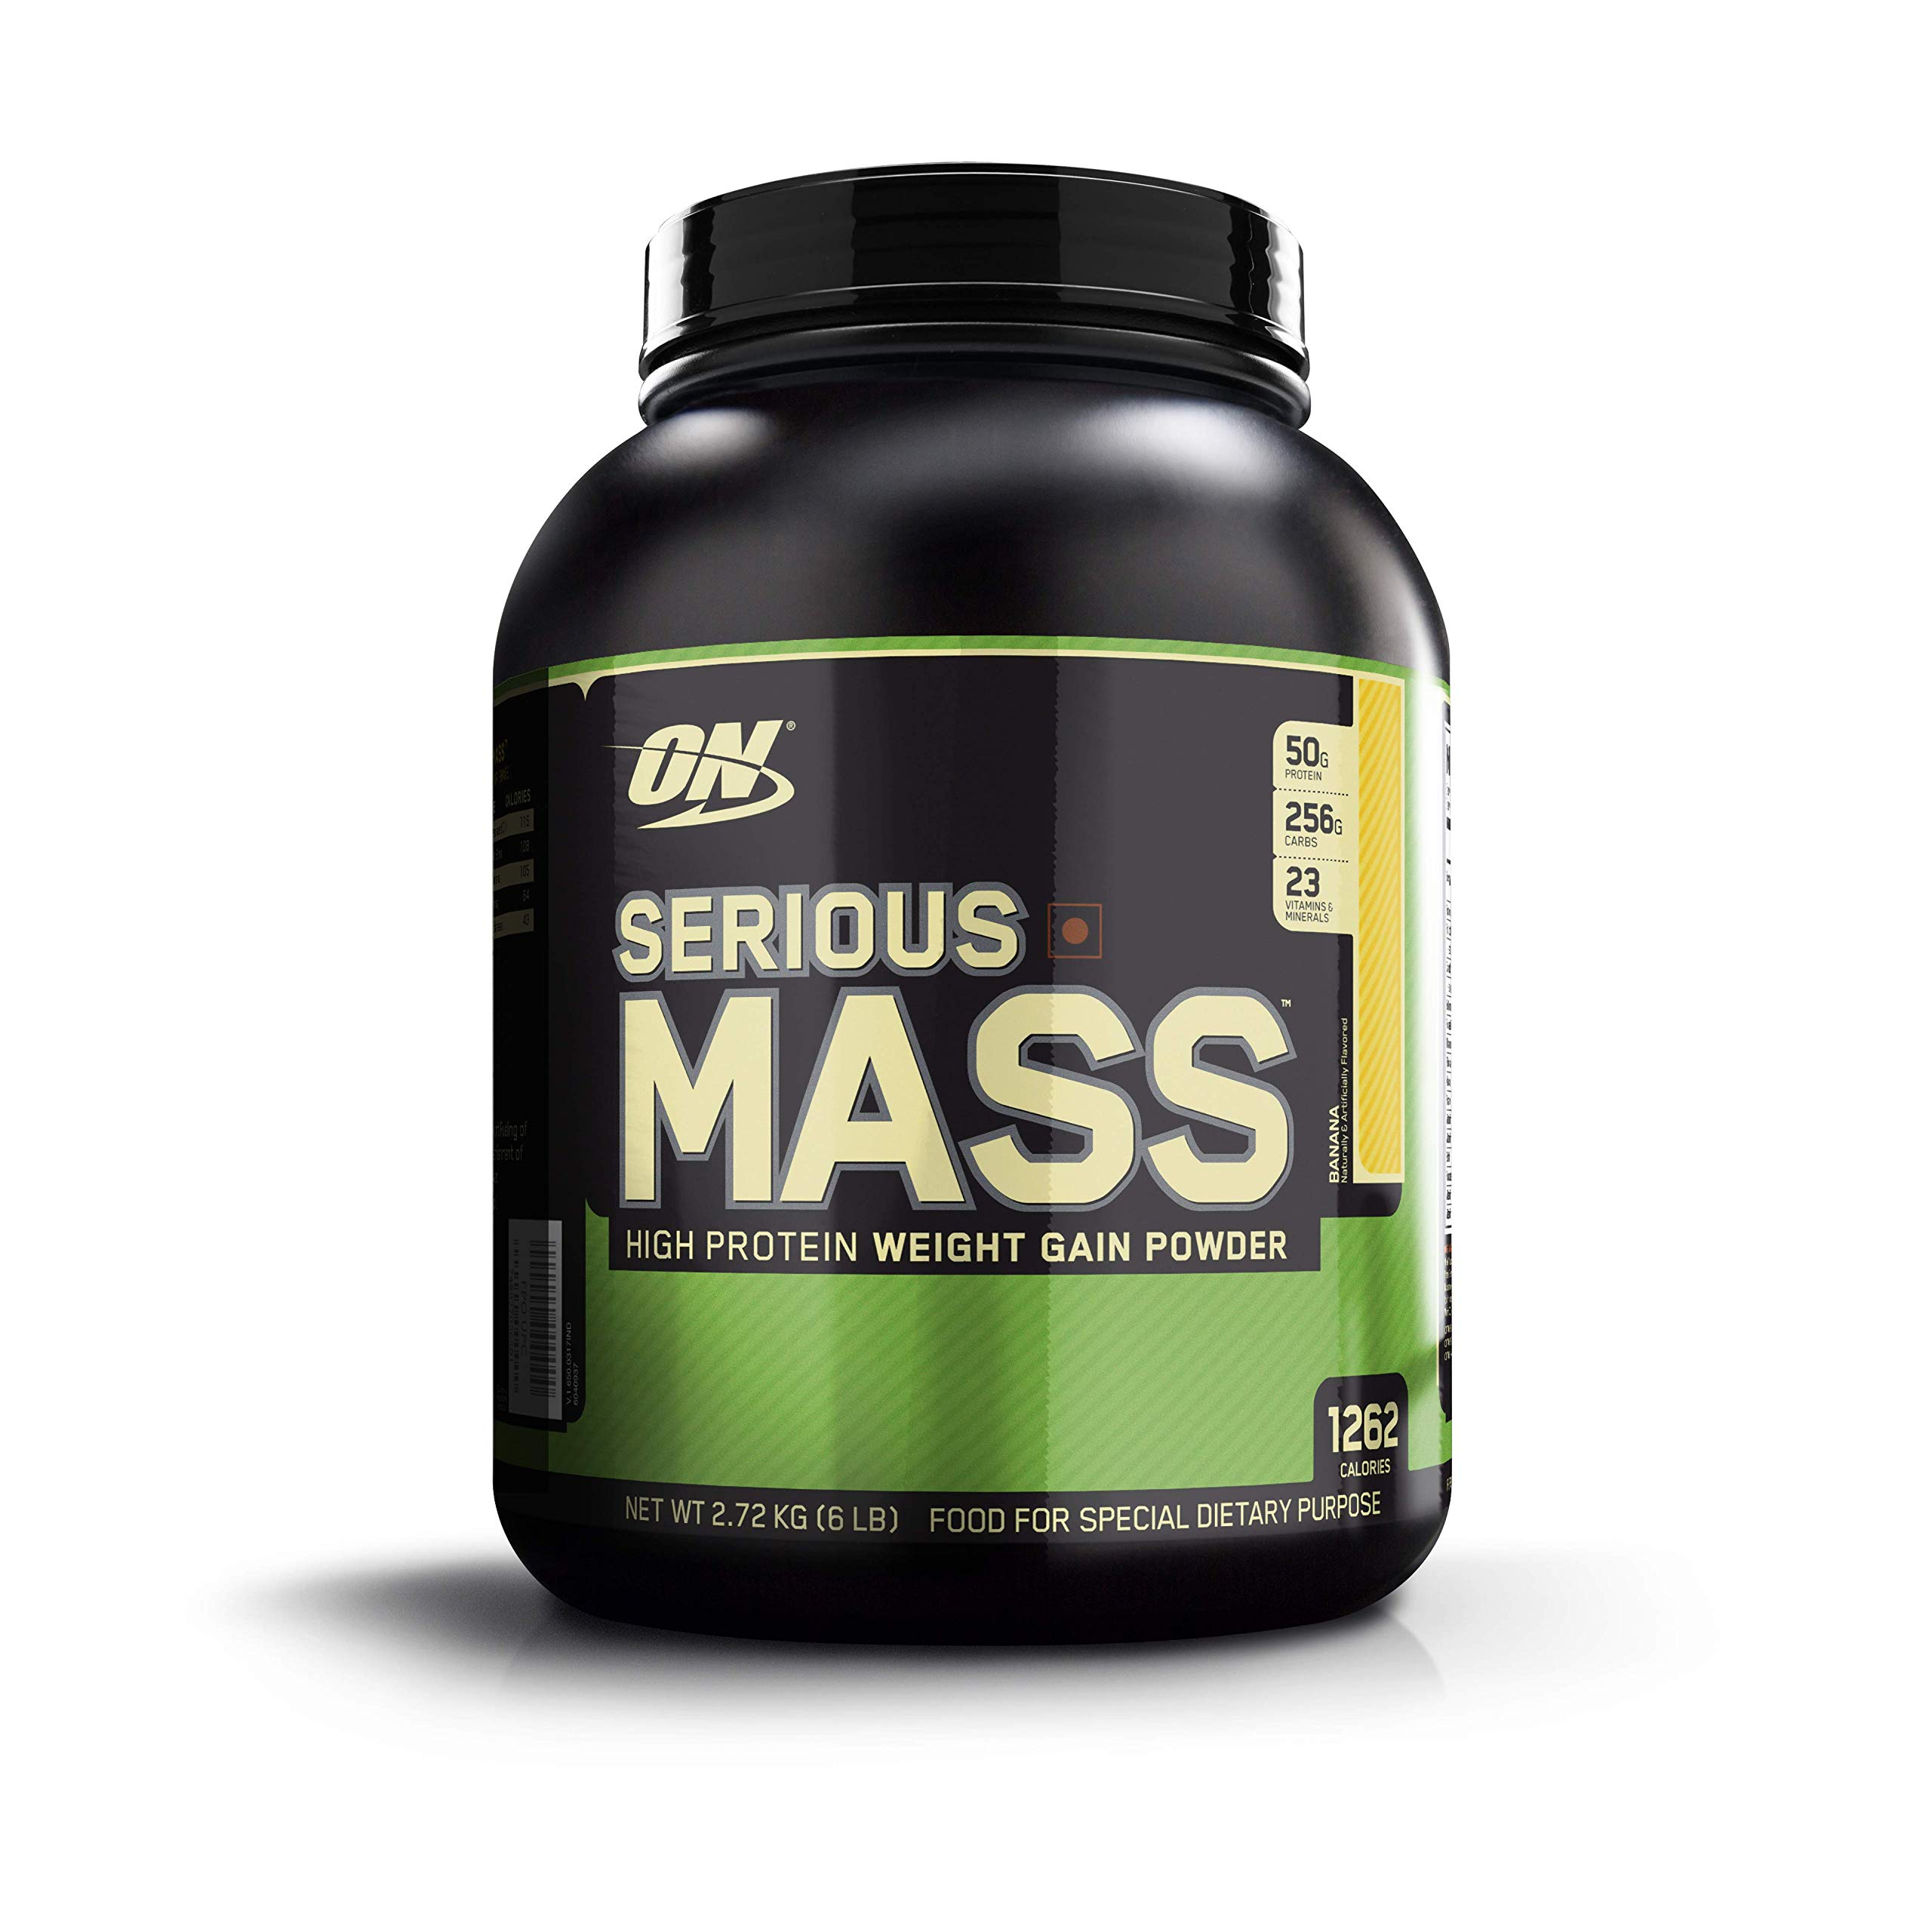 Optimum Nutrition Serious Mass High Calorie Weight Gain/Muscle Gain Protein Powder, 6 Pound